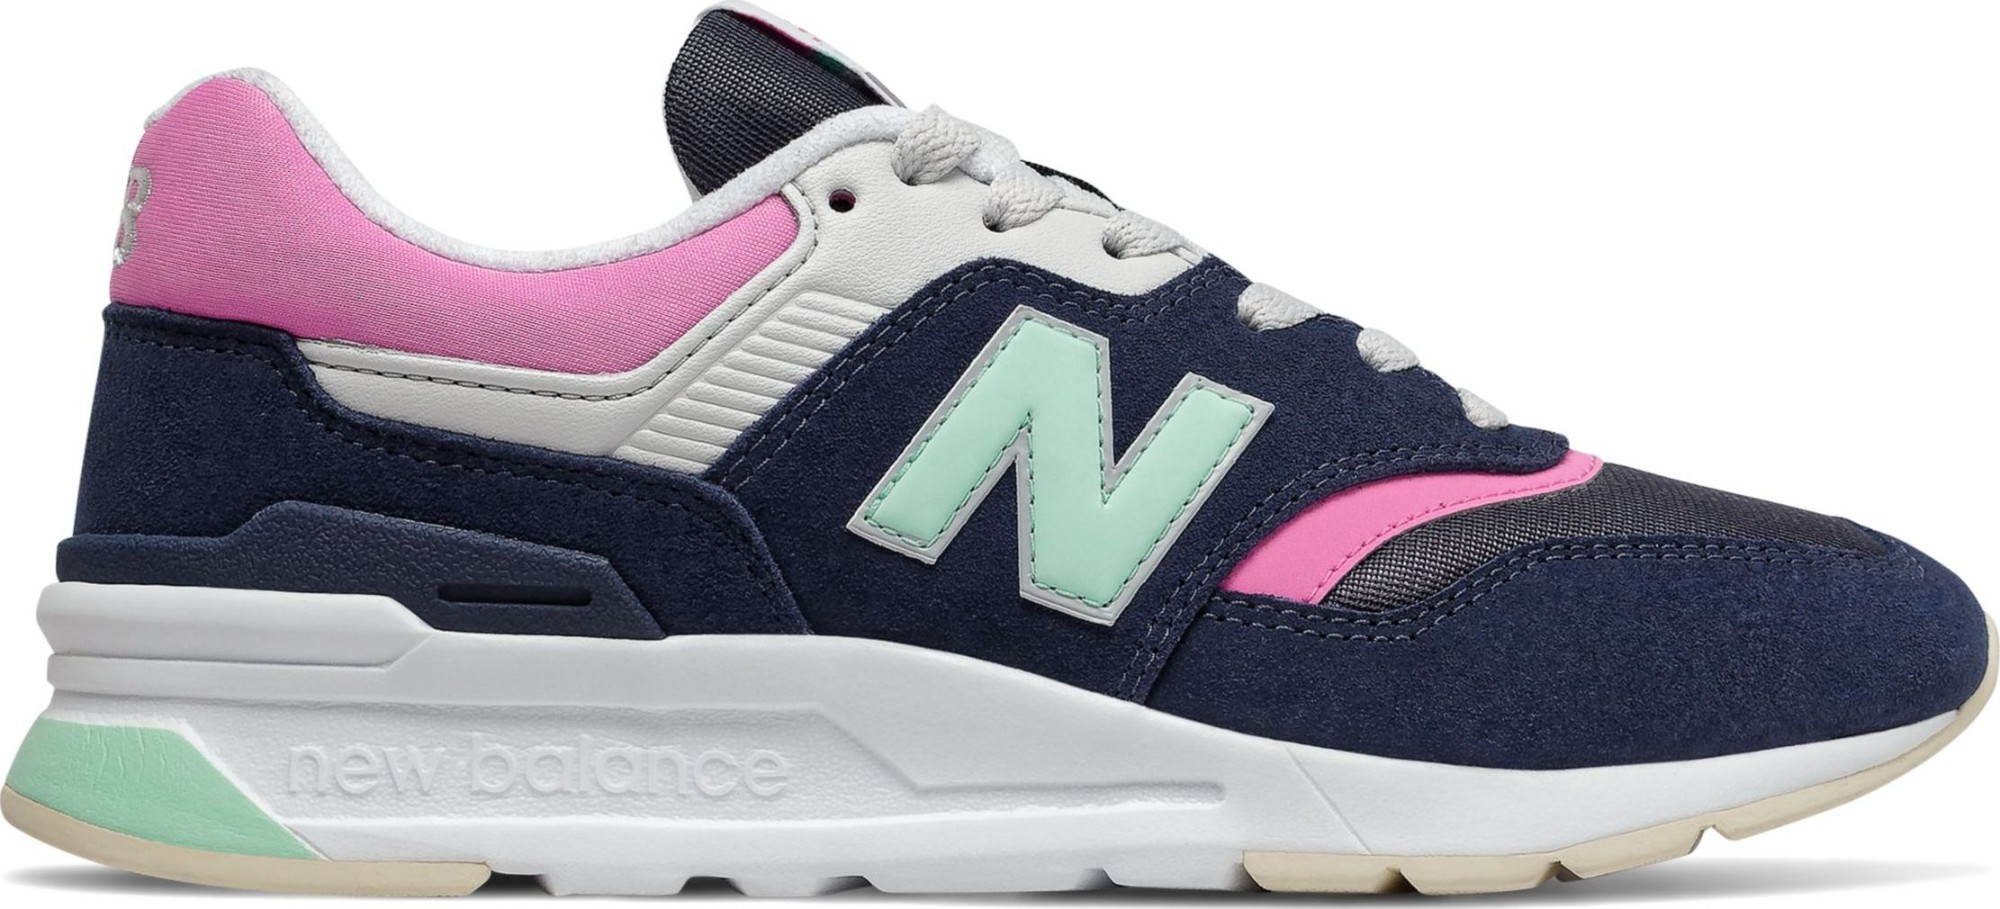 New Balance CW997 Navy/Pink 36,5